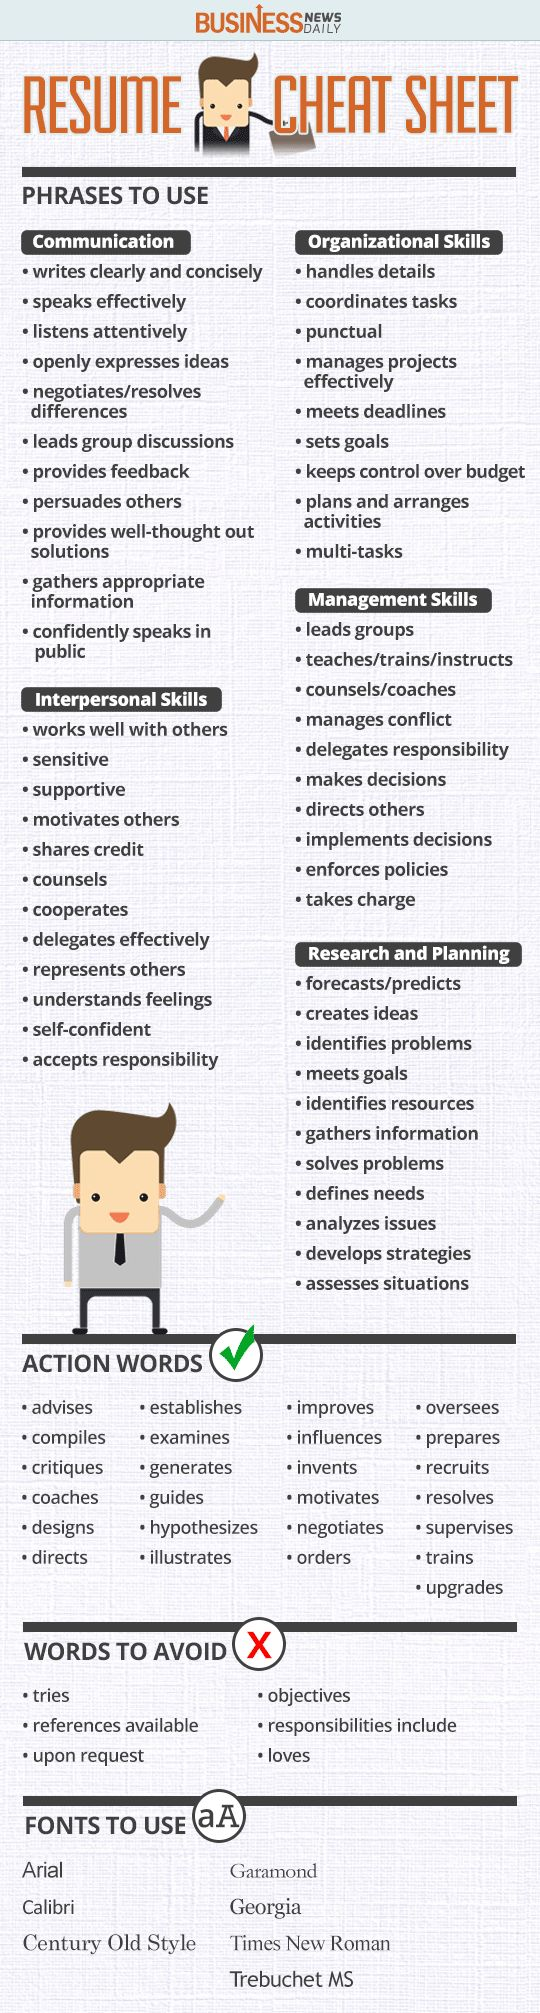 Opposenewapstandardsus  Winsome  Ideas About Resume On Pinterest  Cv Format Resume Cv And  With Lovable Resume Cheat Sheet Infographic Andrews Almost Done With A Complete Unit On Employment Which With Nice Your Resume Also Medical Office Assistant Resume In Addition Project Management Skills Resume And Customer Service Experience Resume As Well As Objective Statement Resume Examples Additionally Simple Resume Layout From Pinterestcom With Opposenewapstandardsus  Lovable  Ideas About Resume On Pinterest  Cv Format Resume Cv And  With Nice Resume Cheat Sheet Infographic Andrews Almost Done With A Complete Unit On Employment Which And Winsome Your Resume Also Medical Office Assistant Resume In Addition Project Management Skills Resume From Pinterestcom